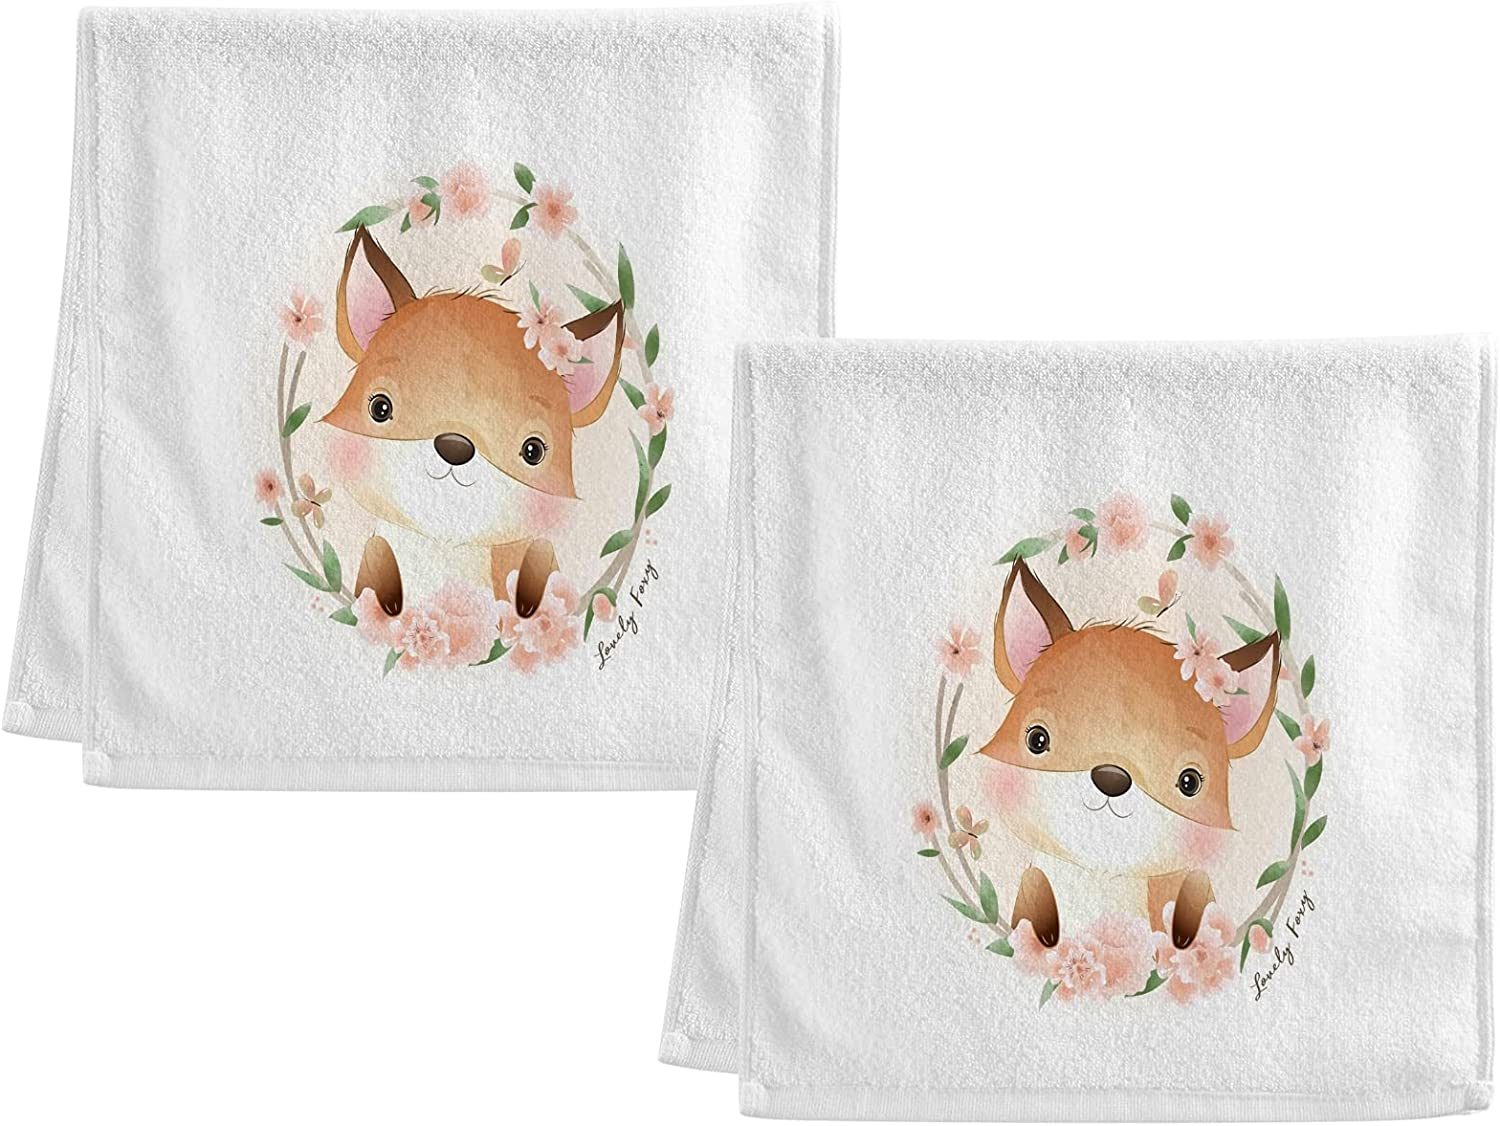 ALAZA Funny Fox Price reduction Flower Floral Cotton Hand of Hotel Set Rapid rise S Towel 2